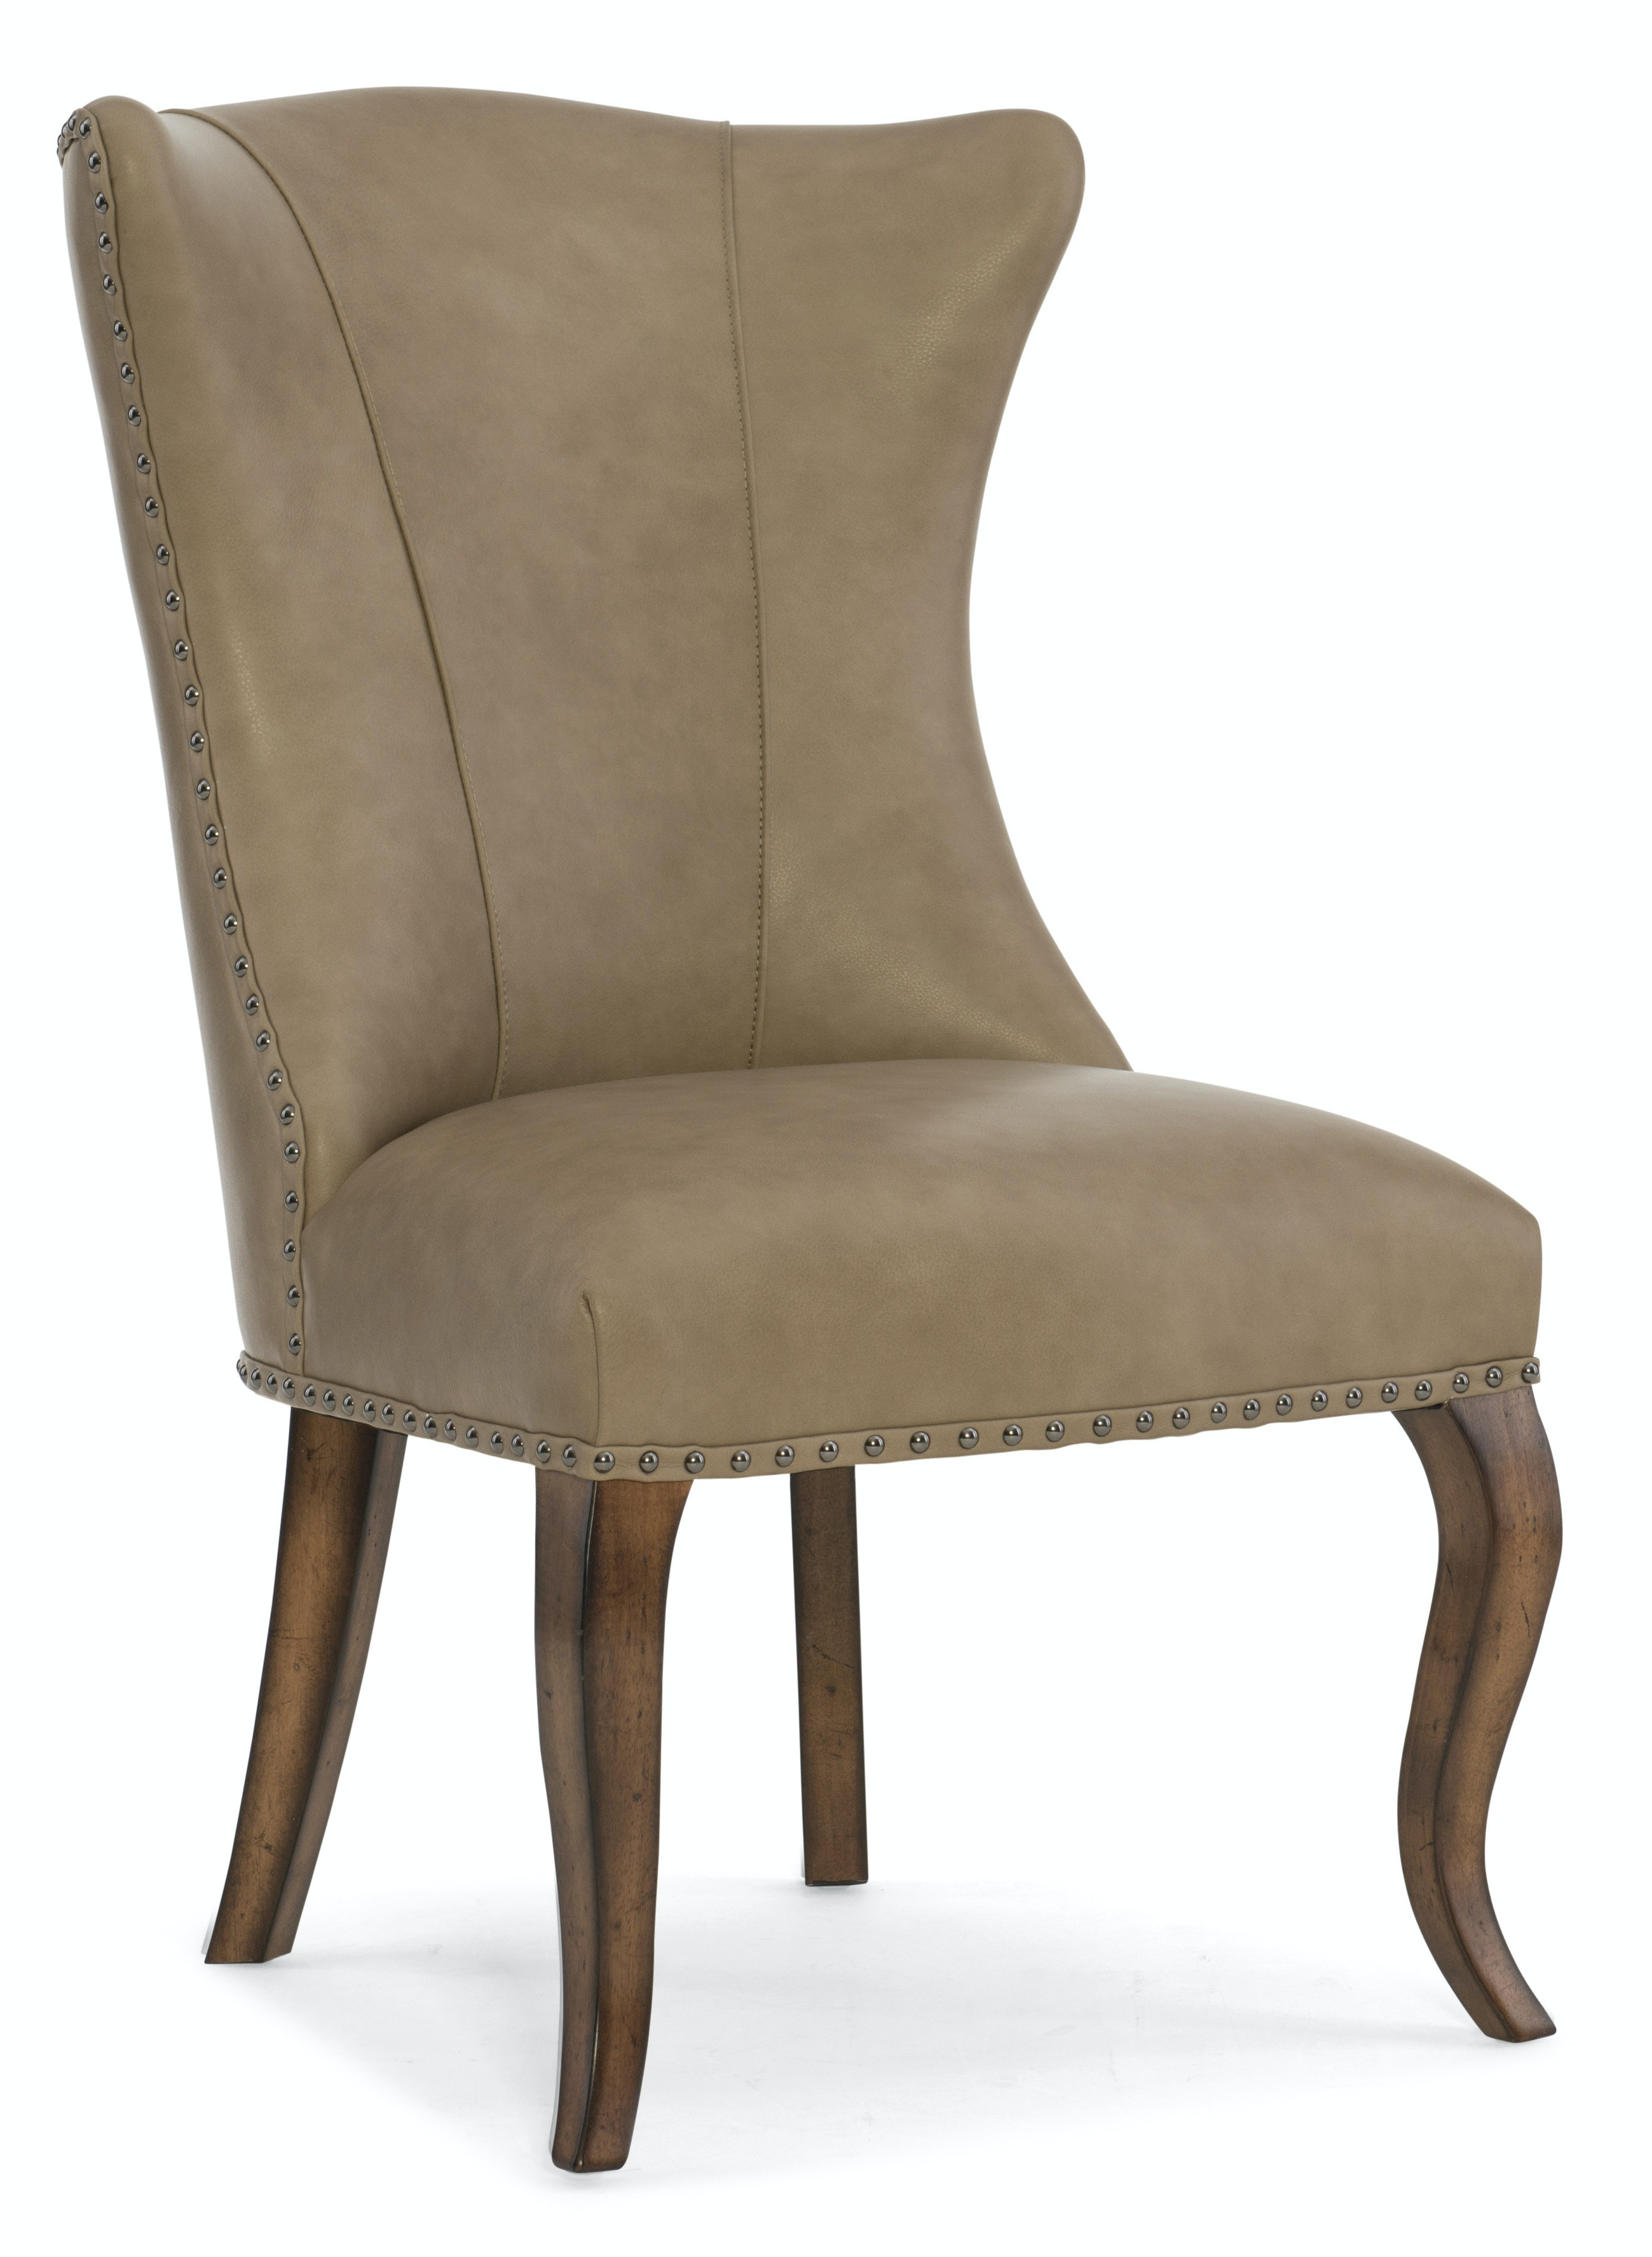 Charmant Hooker Furniture Leather Dining Chair Hooker Furniture 300 350142